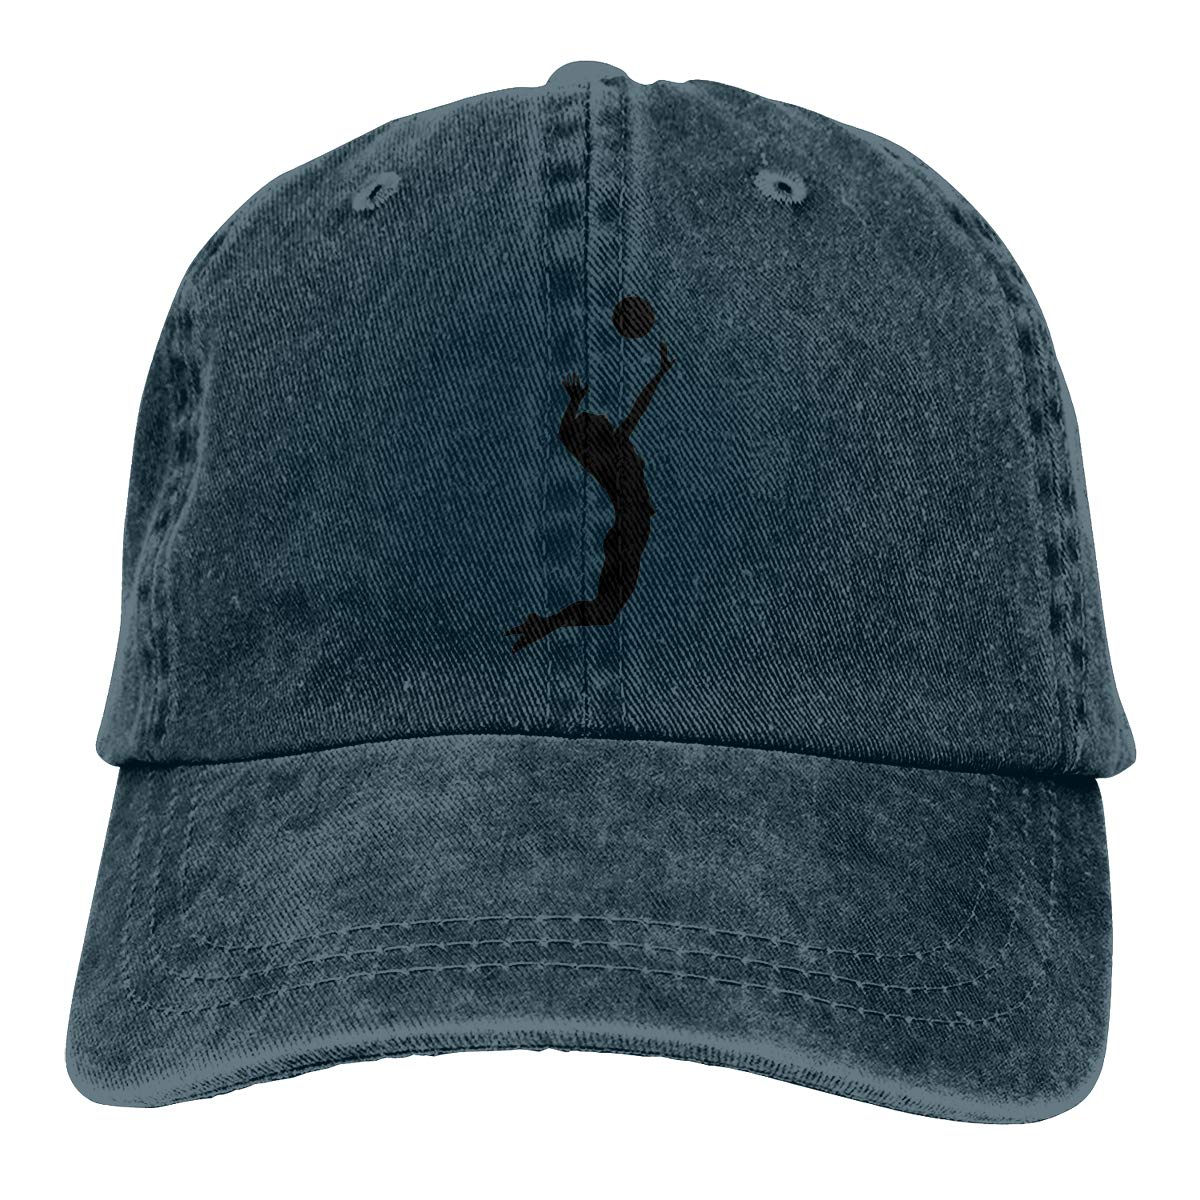 Qbeir Adult Unisex Cowboy Cap Adjustable Hat Volleyball Cotton Denim